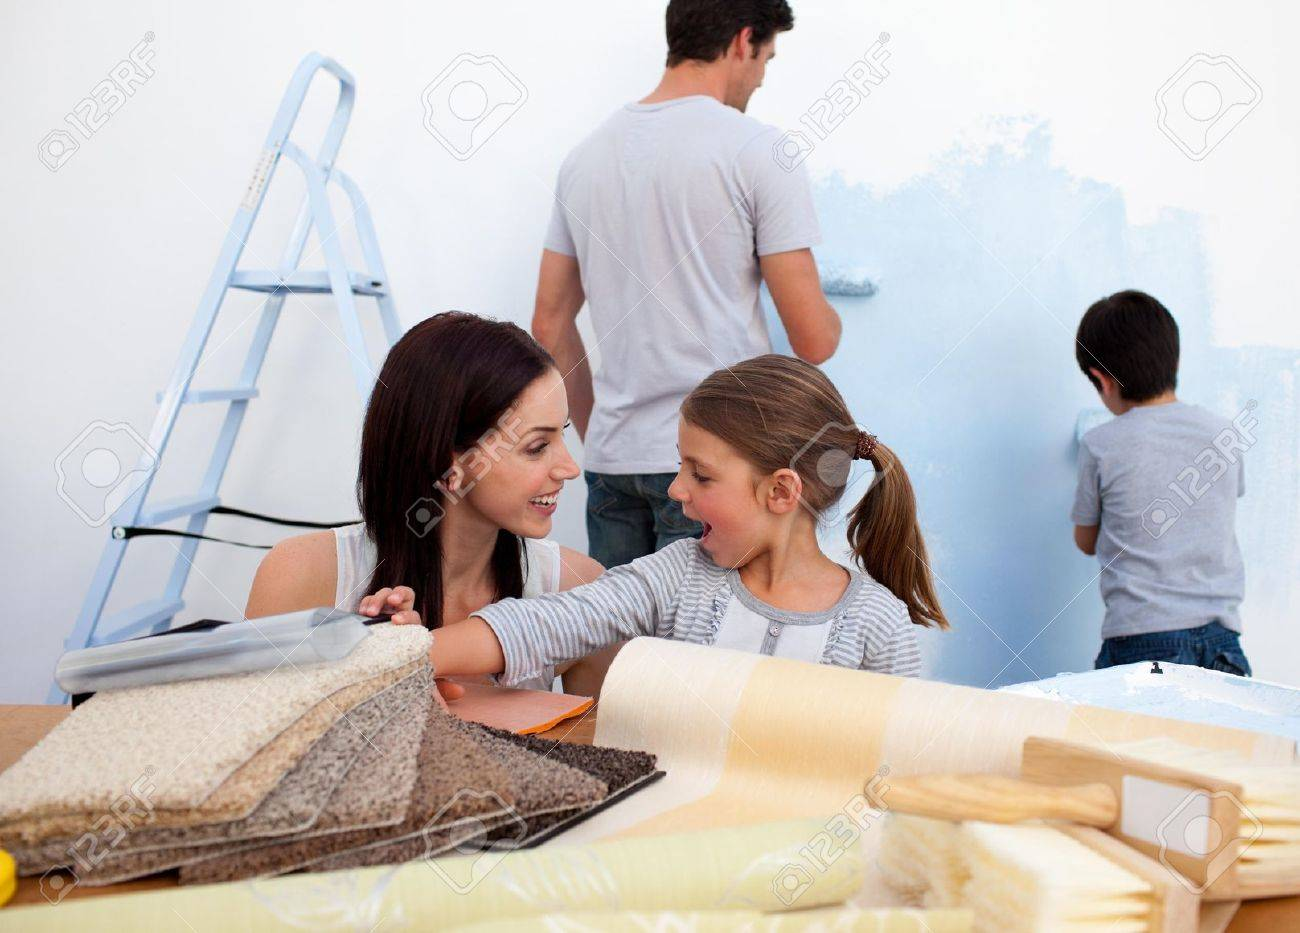 People Decorating Home smiling family decorating their new home stock photo, picture and